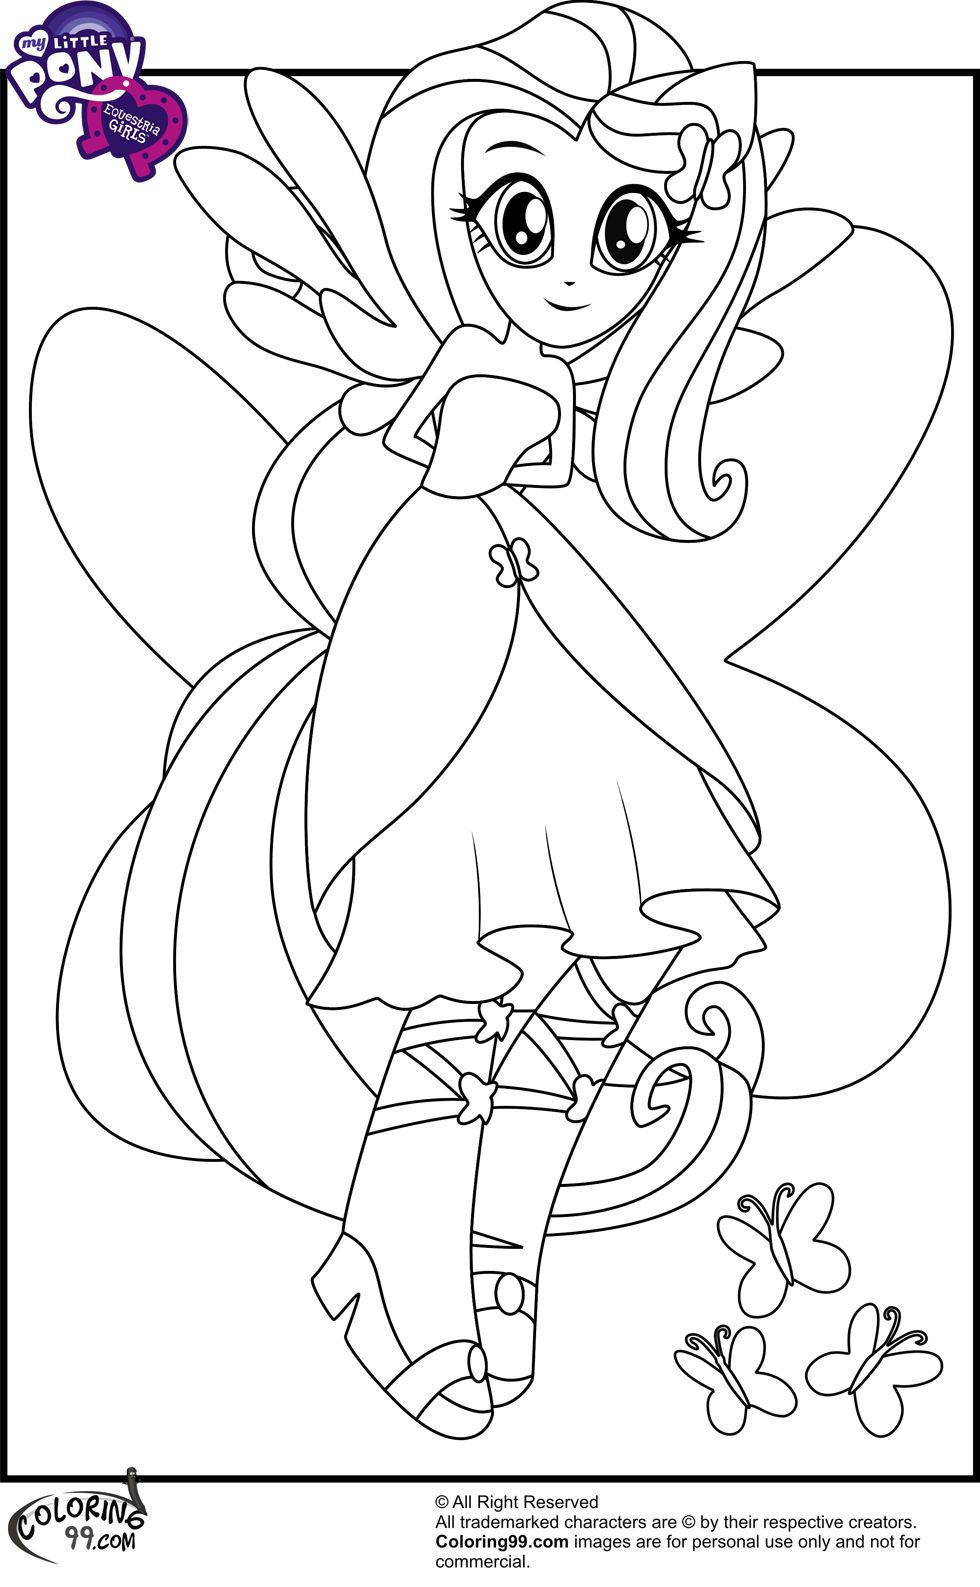 980x1587 Coloring Pages On Equestria Girls, My Little Pony